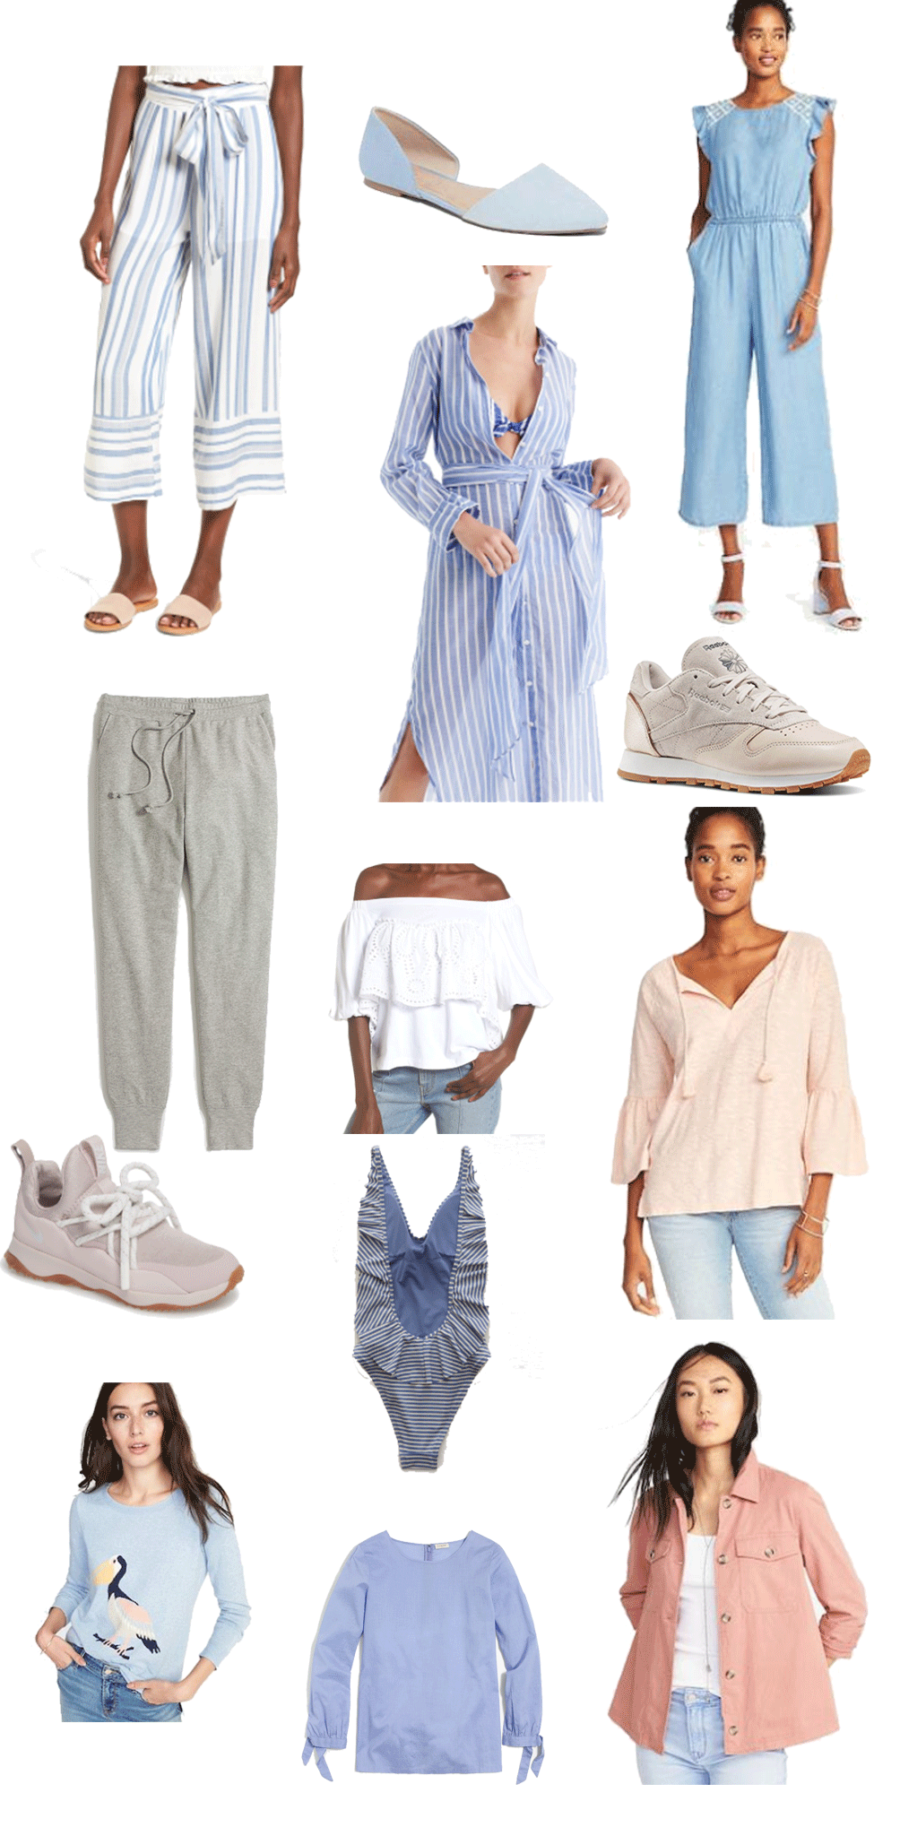 spring fashion favorites under $100